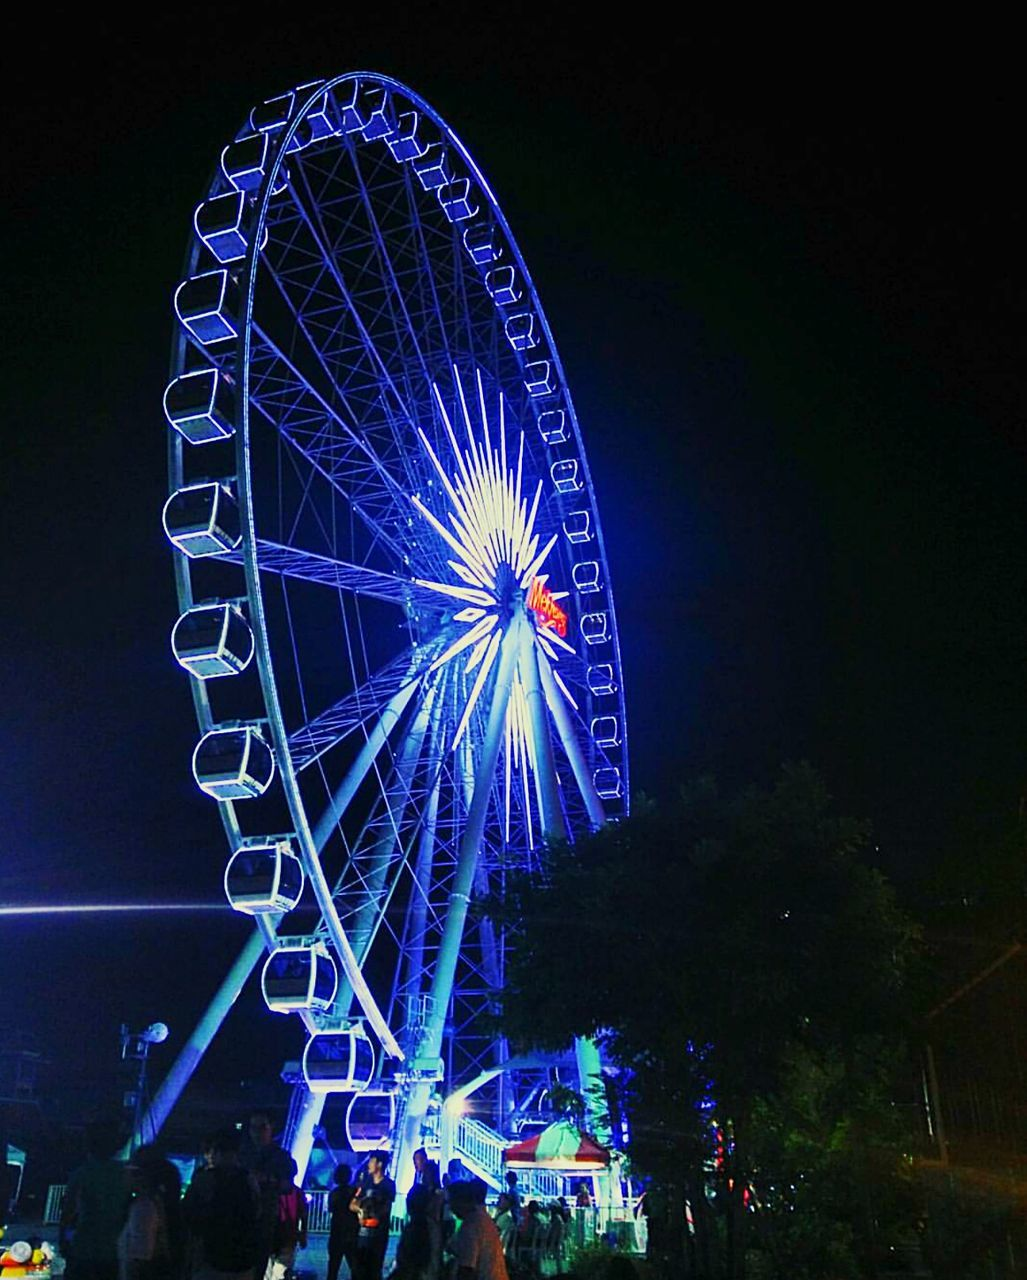 arts culture and entertainment, illuminated, night, ferris wheel, amusement park, nightlife, low angle view, leisure activity, amusement park ride, blue, multi colored, outdoors, sky, no people